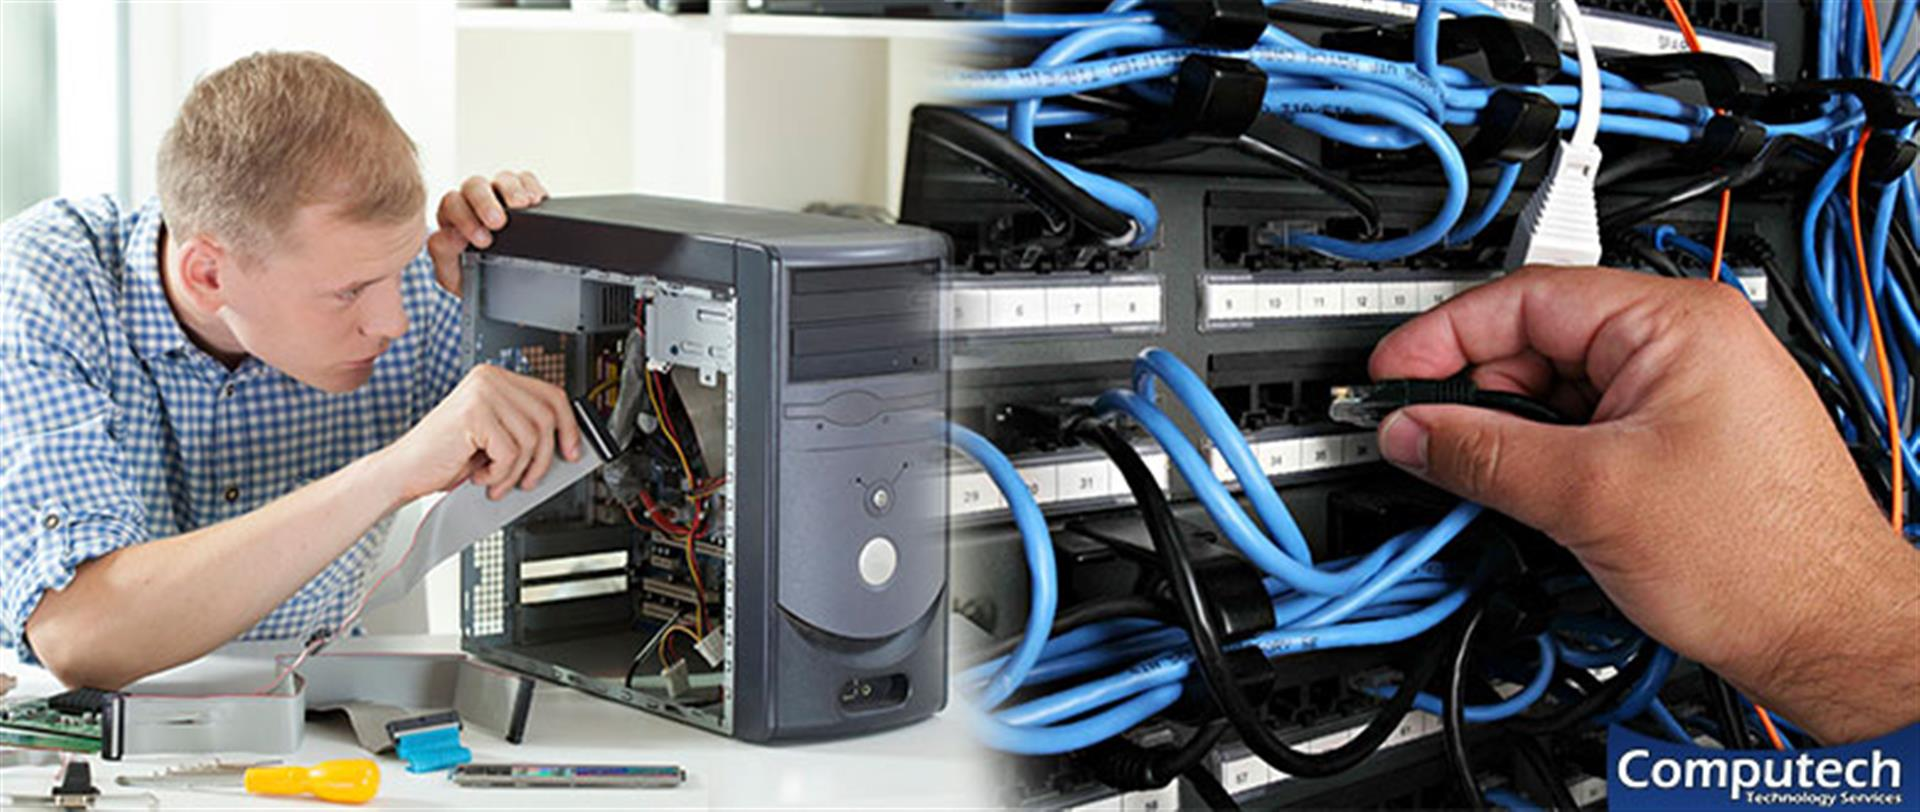 Jonesborough Tennessee Onsite PC & Printer Repair, Networks, Voice & Data Cabling Solutions